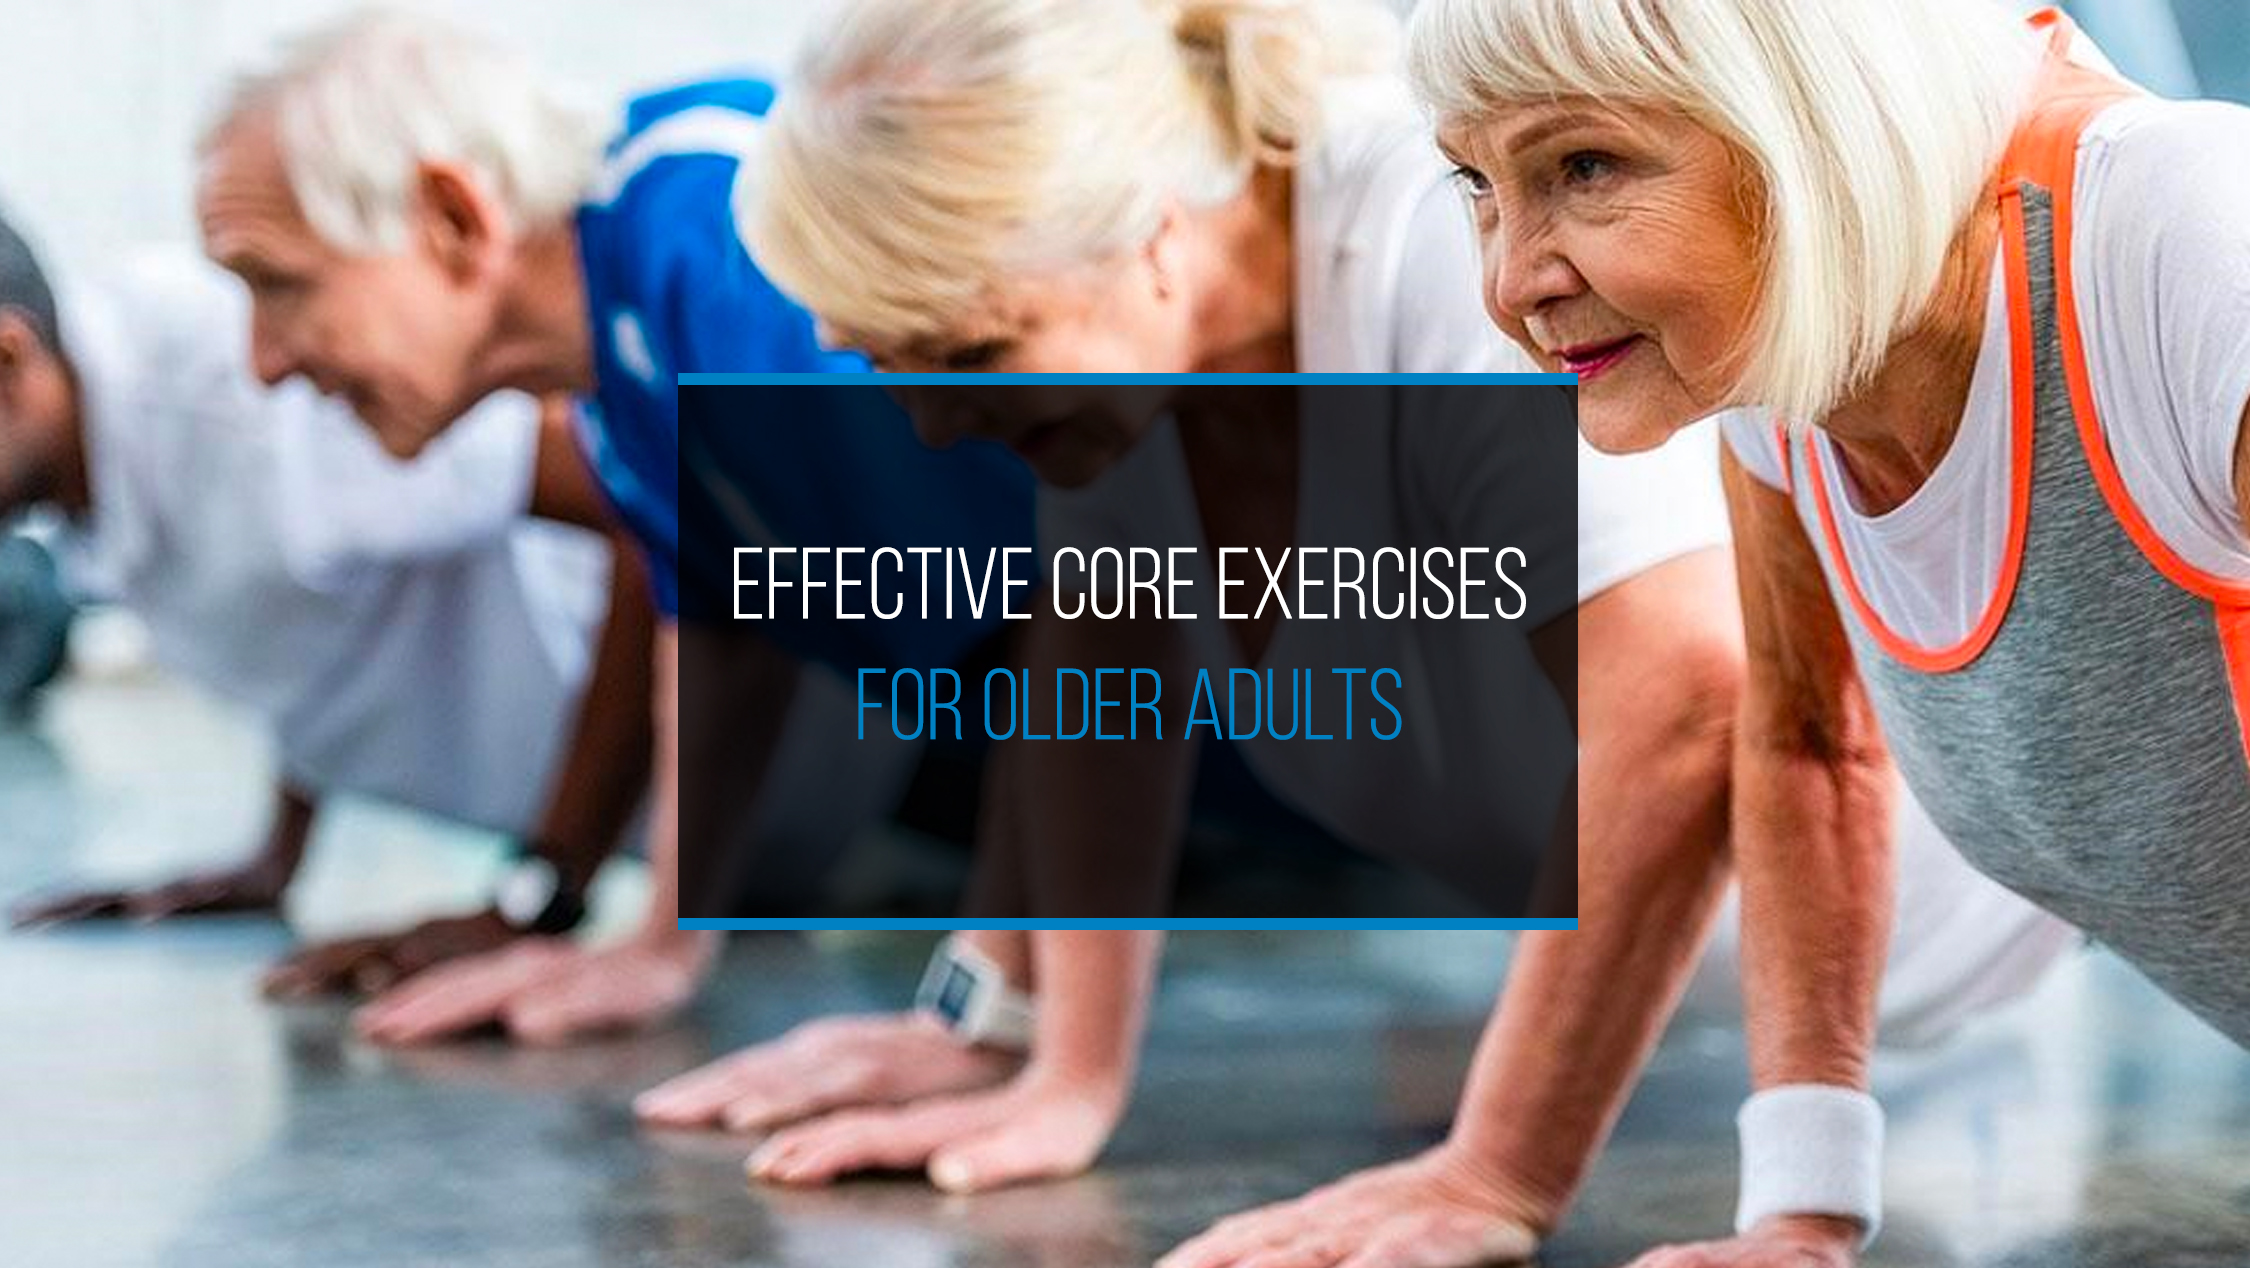 Effective Core Exercises for Older Adults - WP